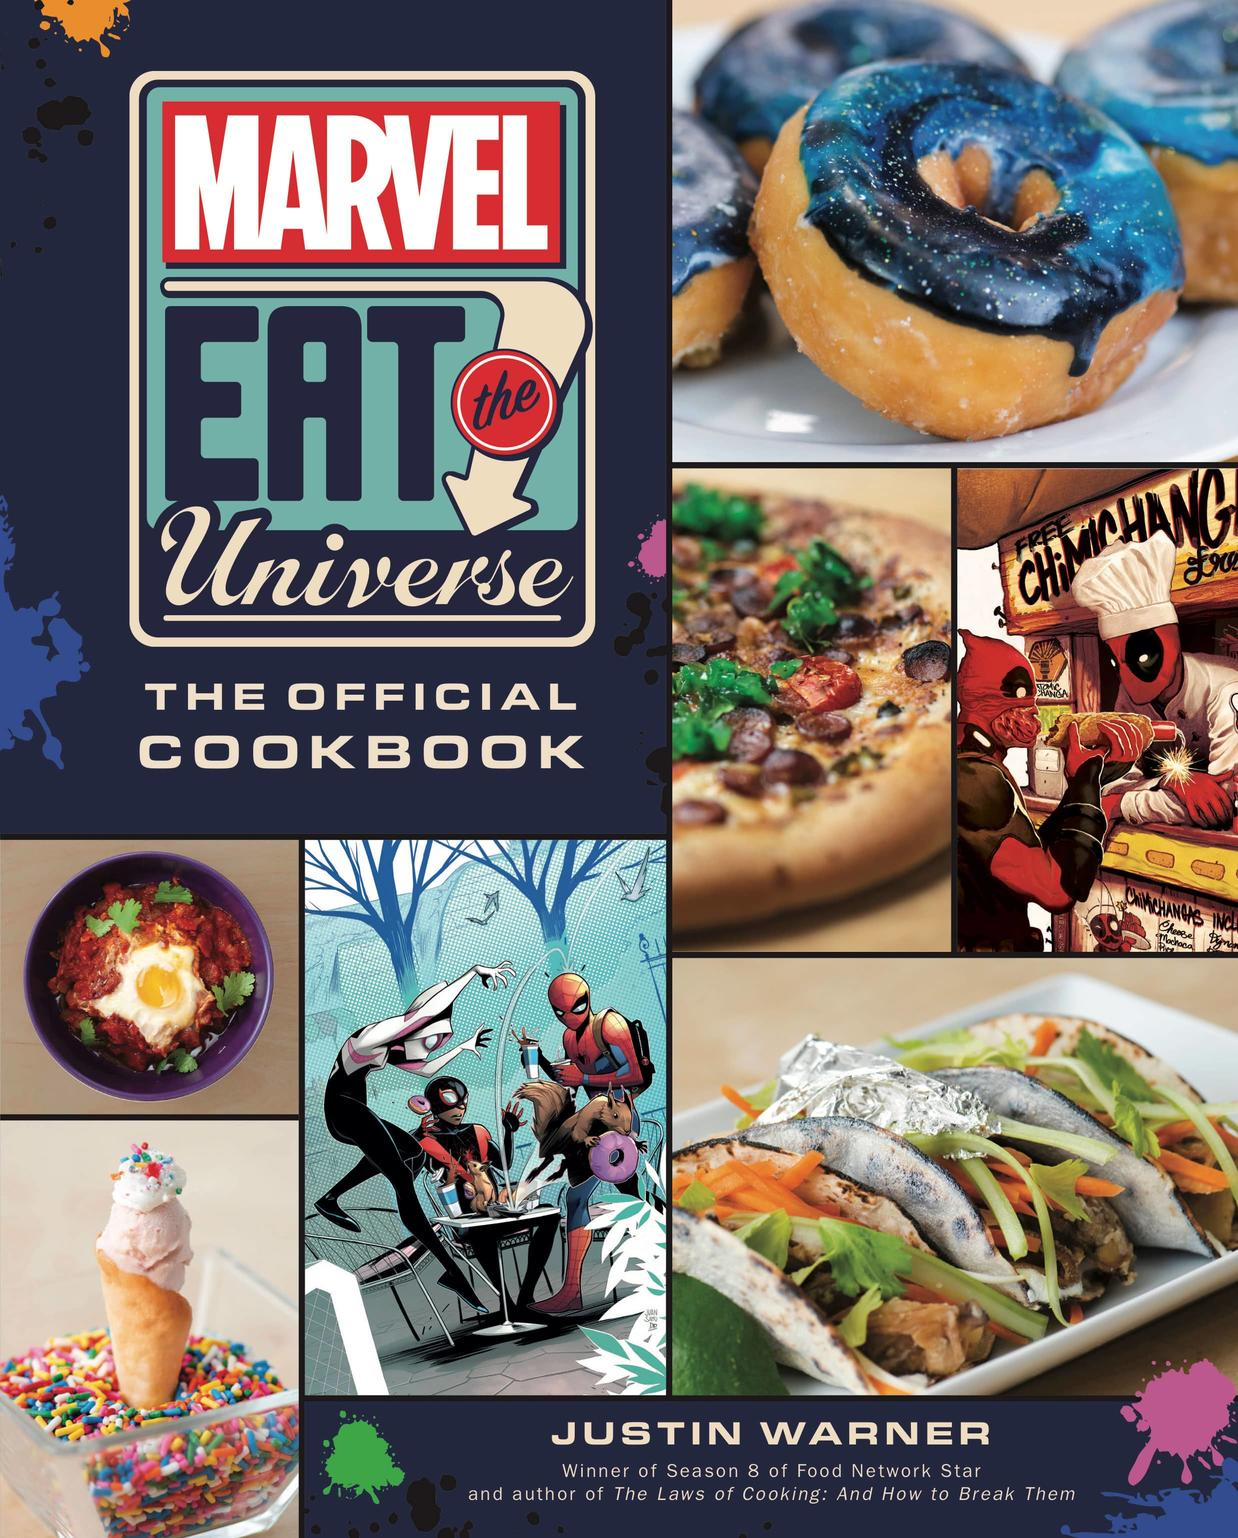 Marvel Eat the Universe The Official Cookbook Cover